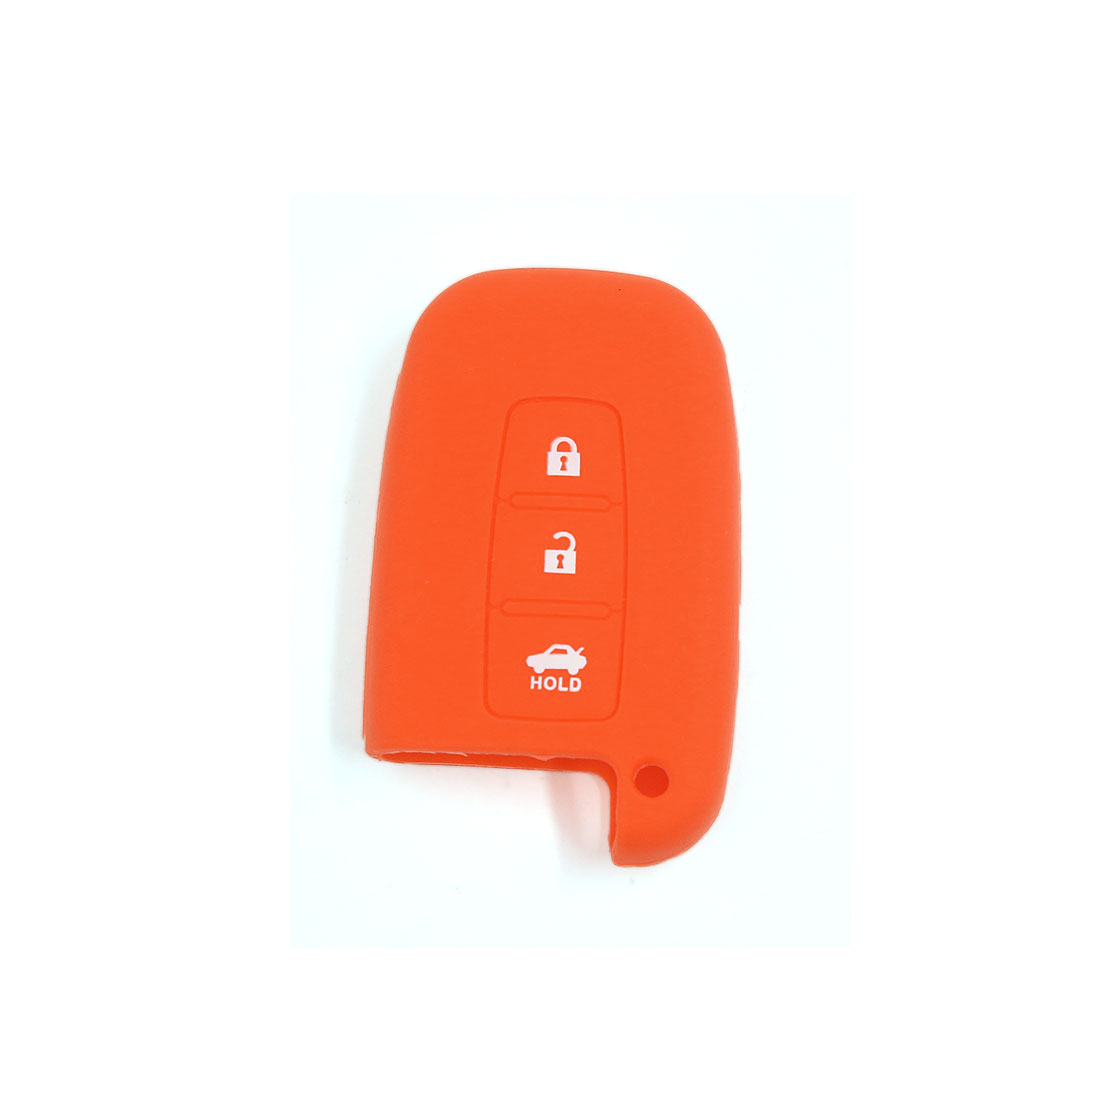 Orange Soft Silicone Remote Key Fob Case Cover Jacket Skin for Hyundai 3 Buttons